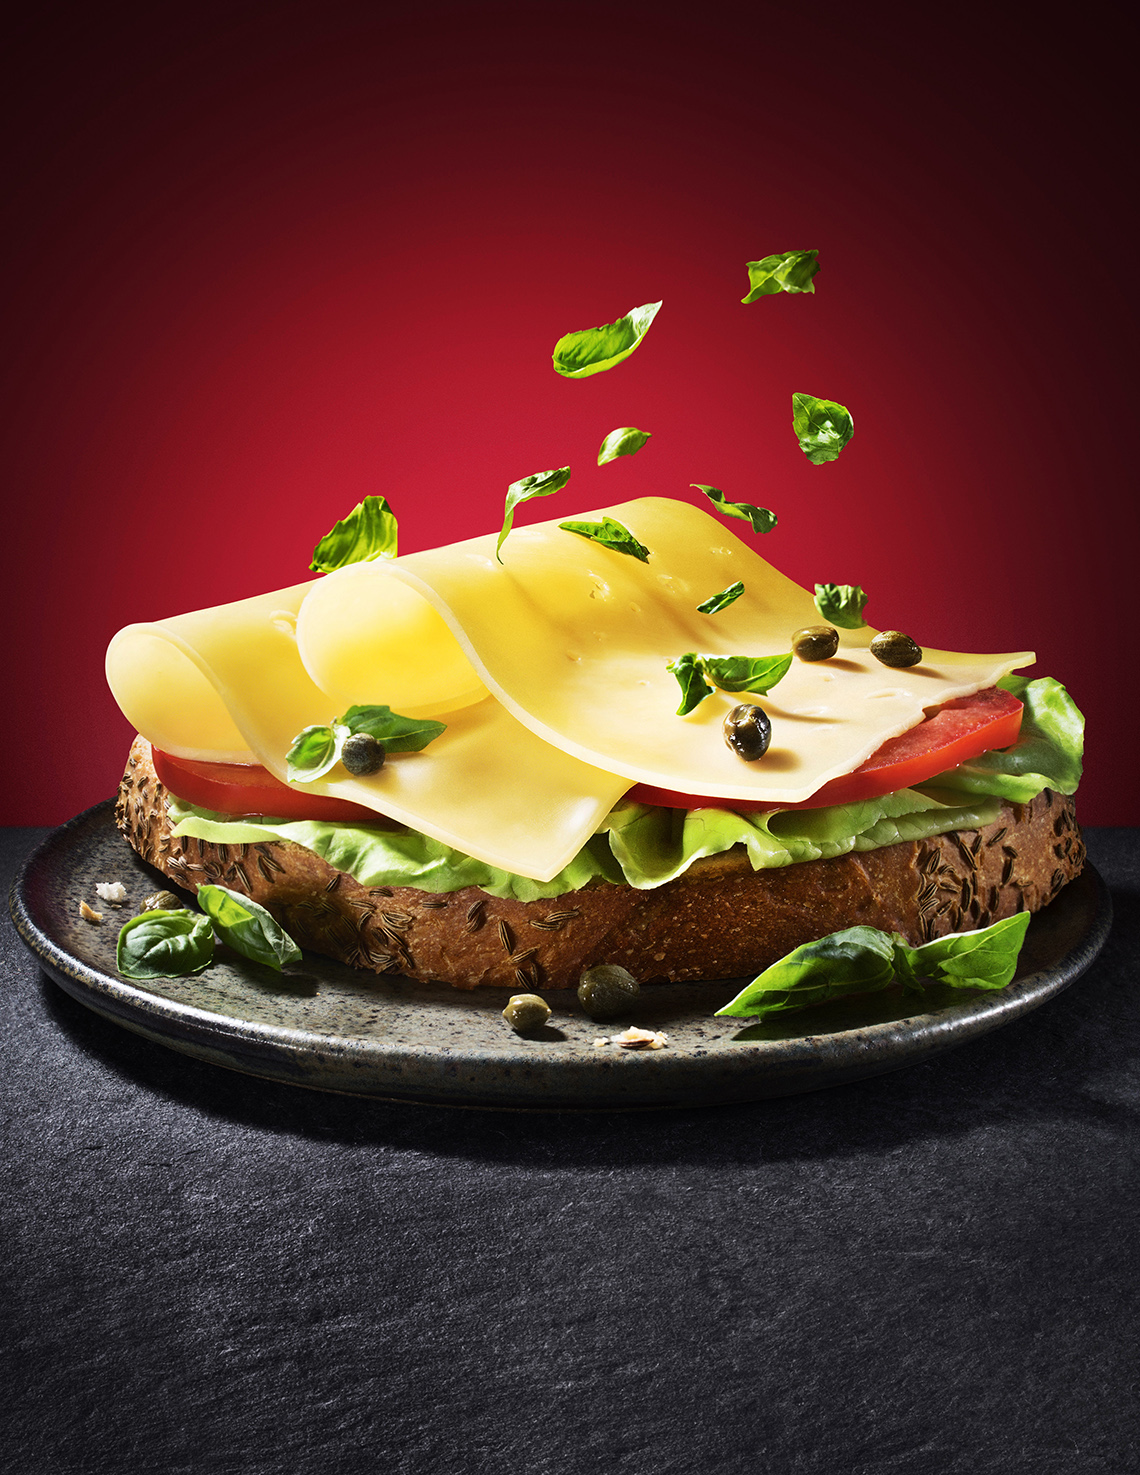 New-york-leading-food-photography-studio-cheese